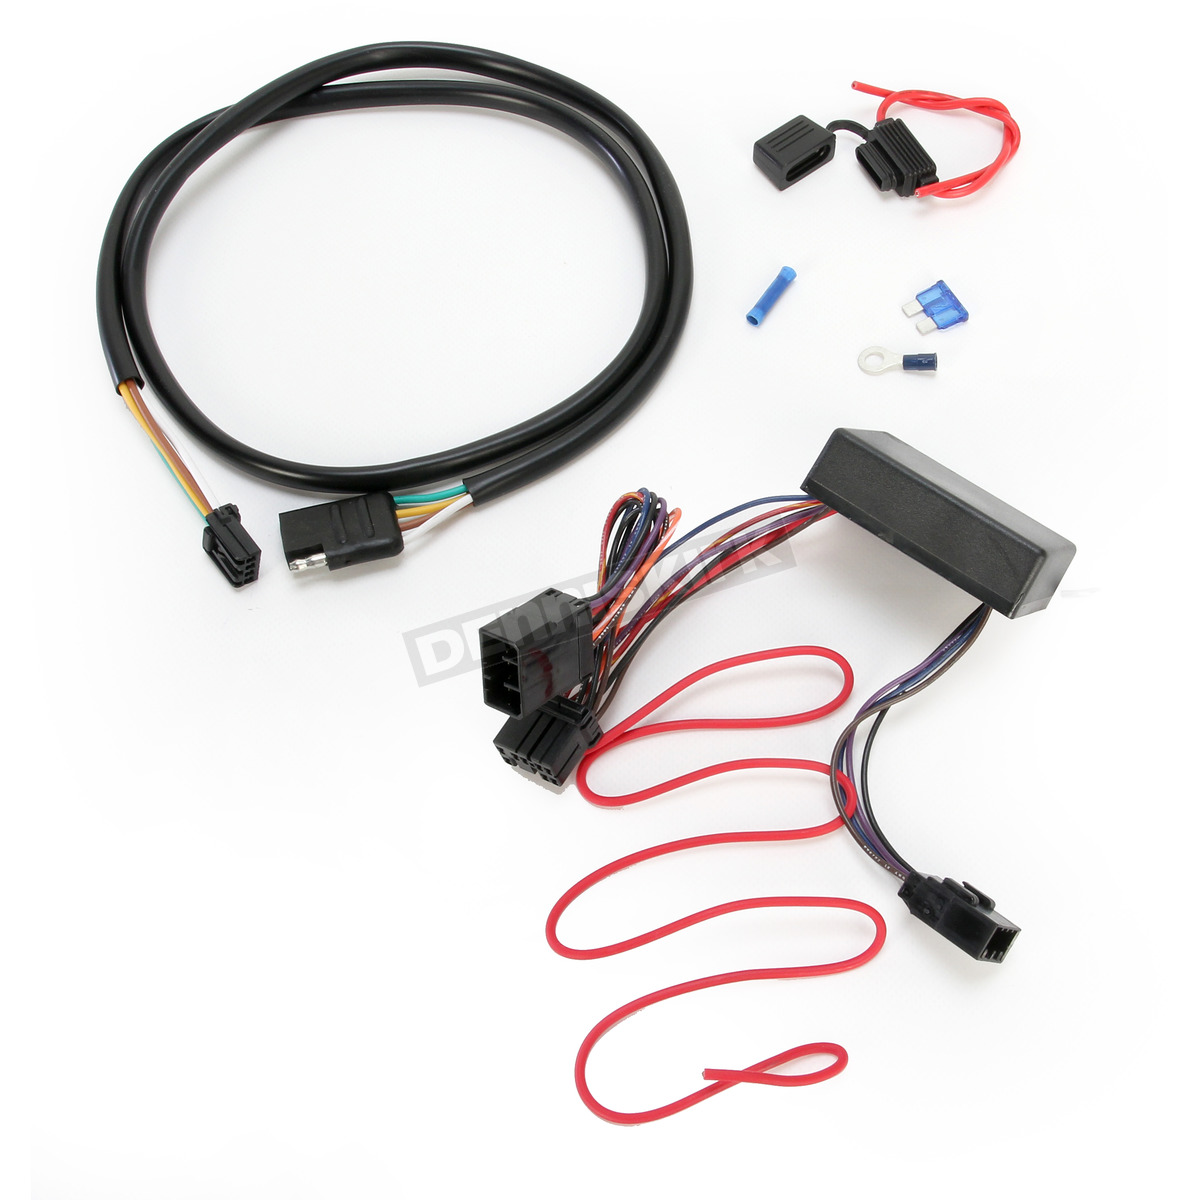 Fantastic Khrome Werks Plug And Play Trailer Wiring Connector Kit W 4 Wire Wiring Cloud Hisonuggs Outletorg